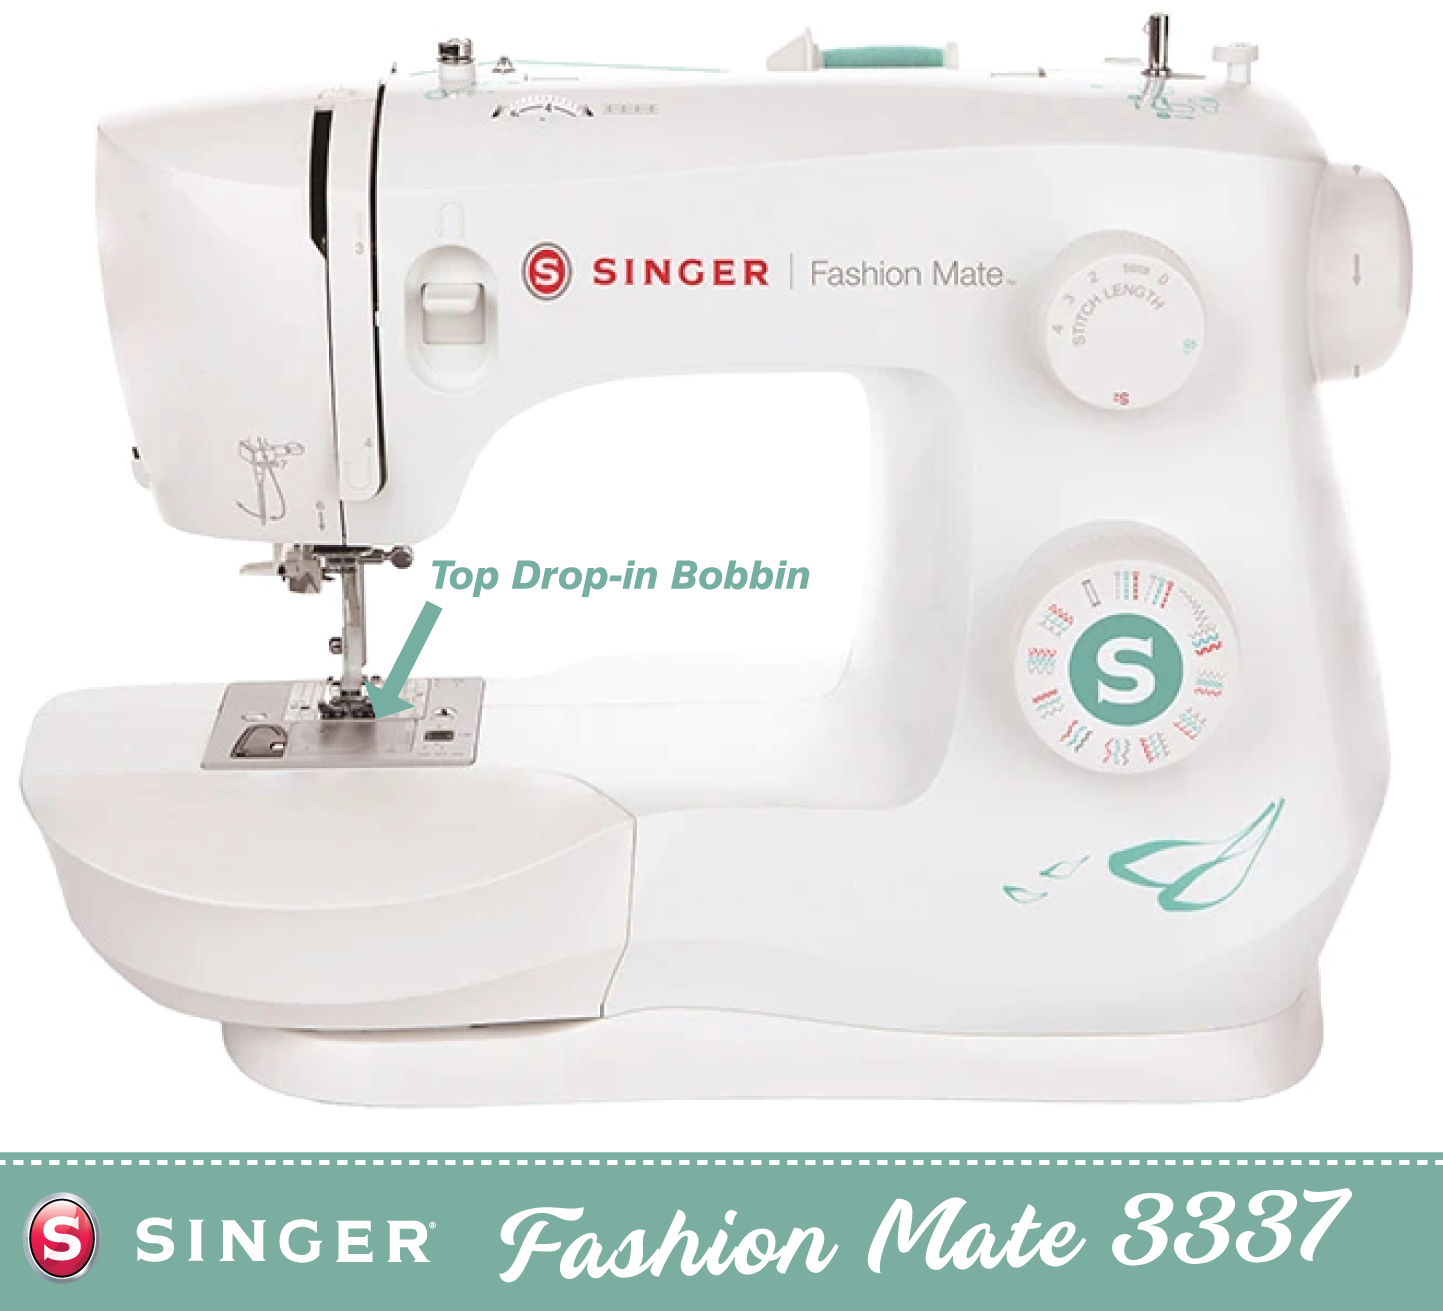 Singer Fashion Mate 3337 * latest 2021 model * - Heavy Duty Metal Frame - 1 step buttonhole, Sews Silk to Leather - Preorder for November delivery